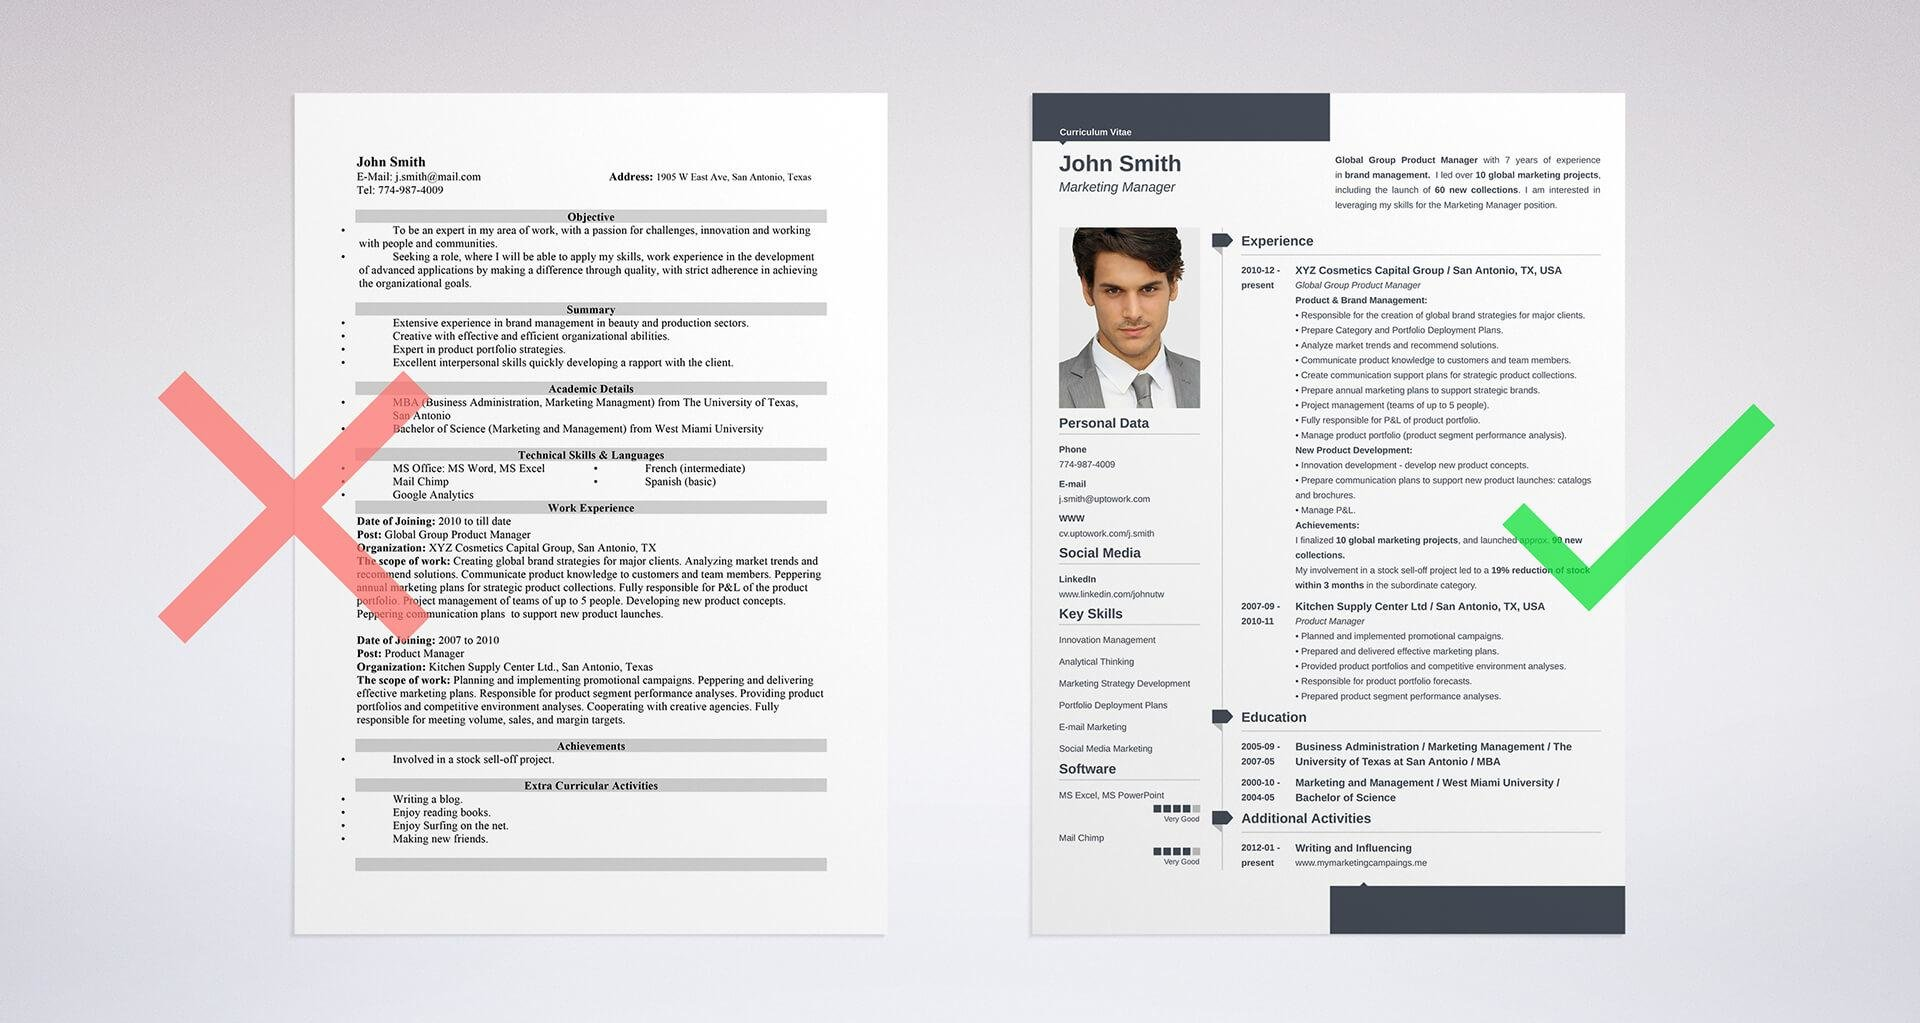 Amazing 1 Page Resume Format Download Huge 1 Page Resume Or 2 Flat 1 Year Experience Java Resume Format 11x17 Graph Paper Template Youthful 15 Year Old Funny Resume Black15 Year Old Student Resume Wharton Resume Template | Resume Format Download Pdf